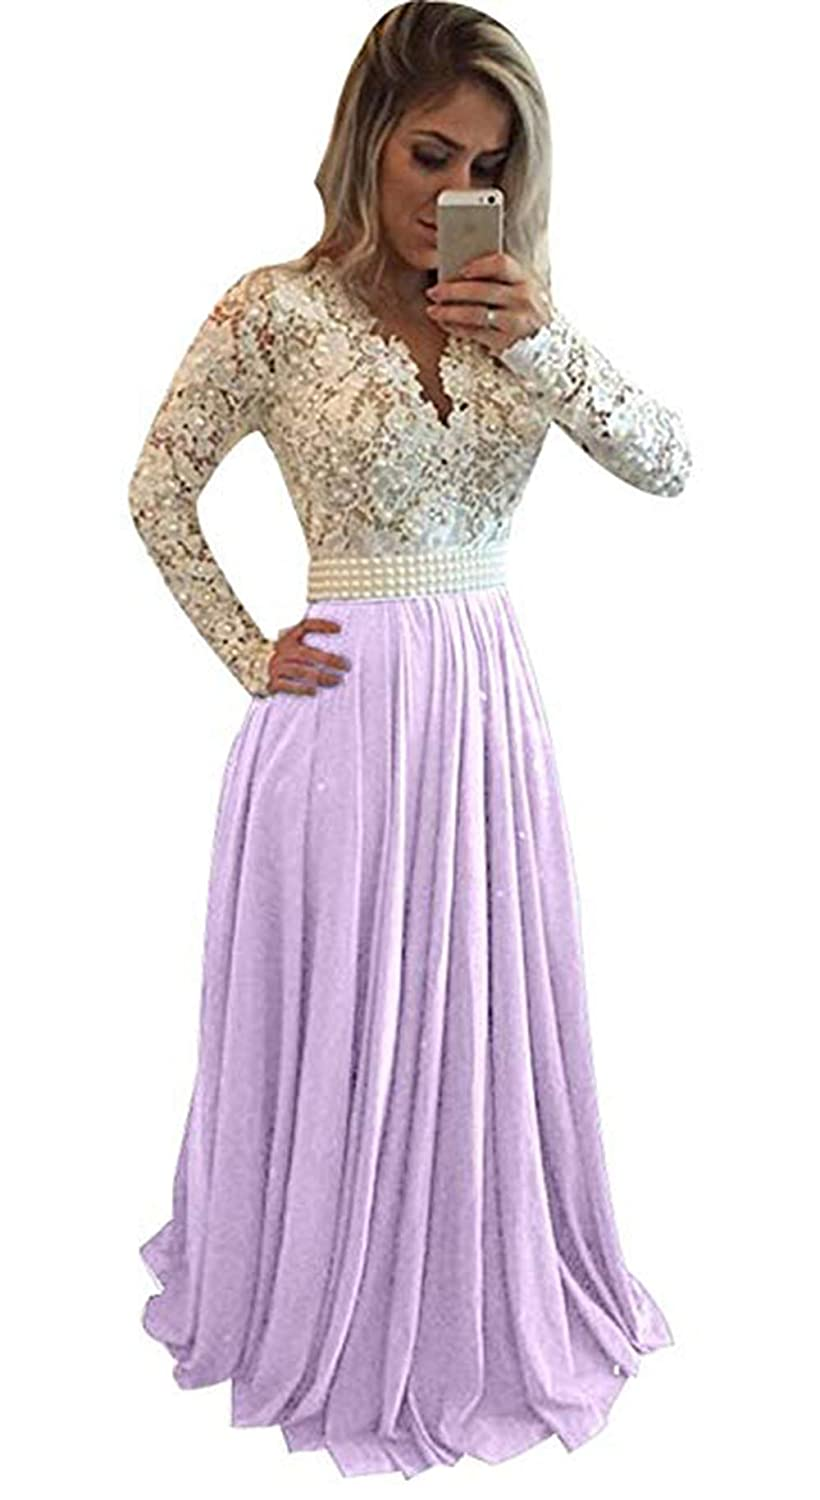 Apurplec Ri Yun Womens Prom Dresses Long Sleeve Lace 2018 Illusions Back Pearl VNeck Formal Evening Ball Gowns